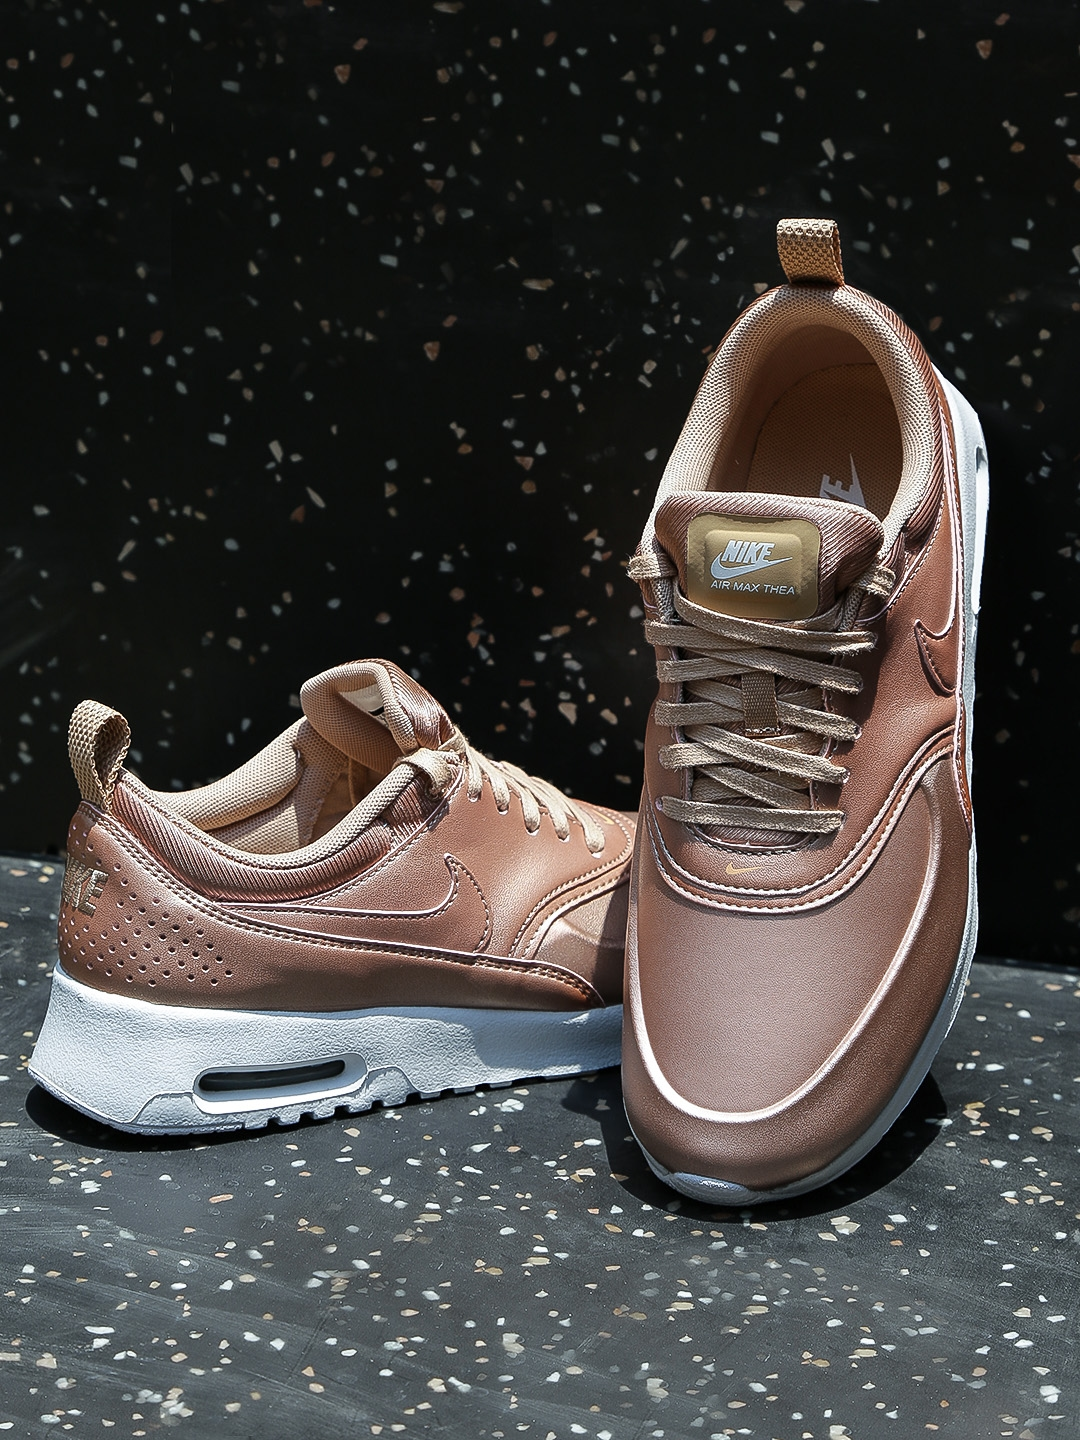 fdb9103c528 Buy Nike Women Rose Gold Toned Air Max Thea Sneakers - Casual Shoes ...